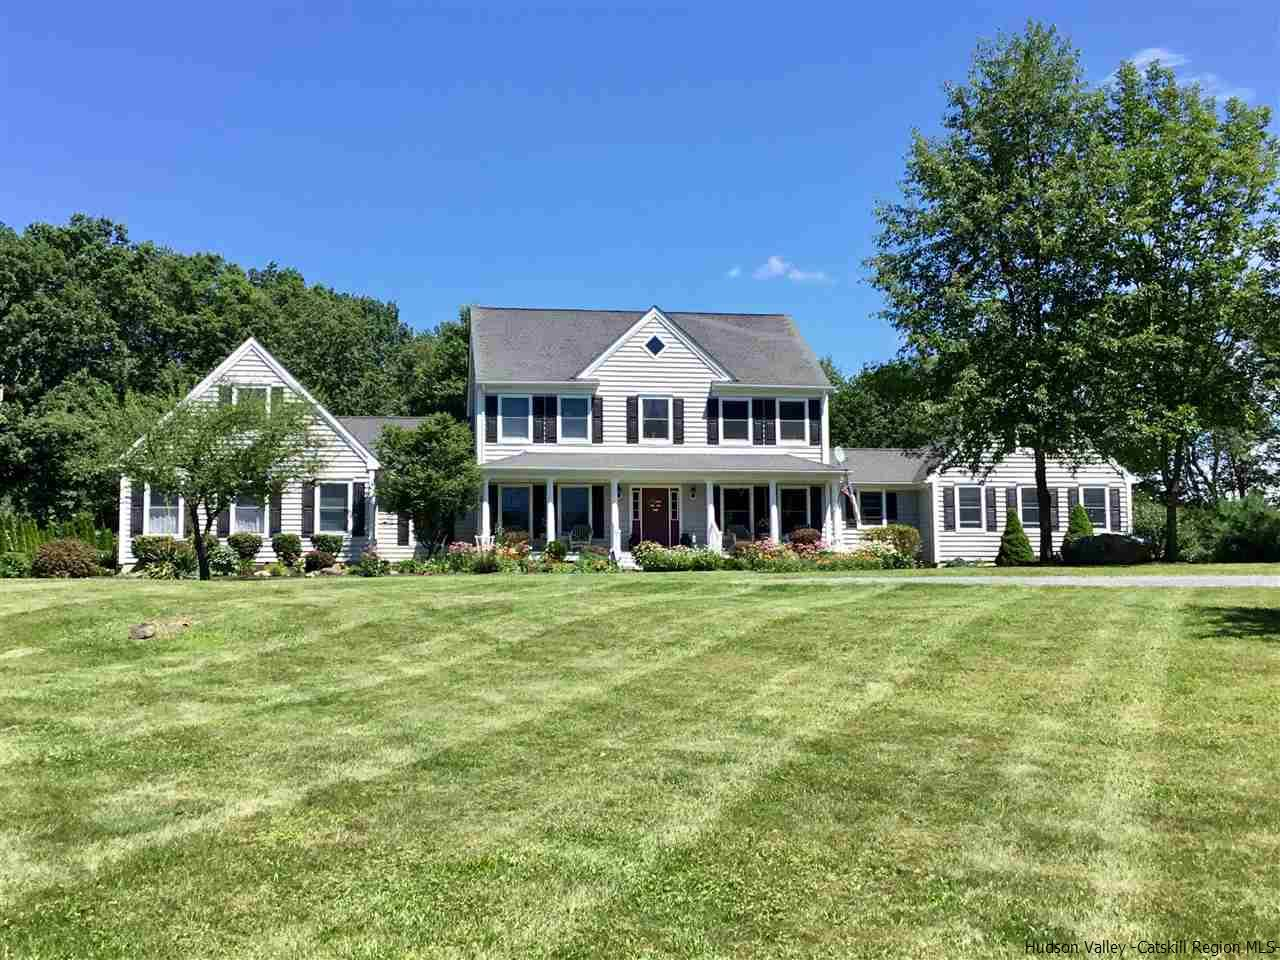 Single Family Home for Sale at 87 Shivertown Road 87 Shivertown Road New Paltz, New York 12561 United States